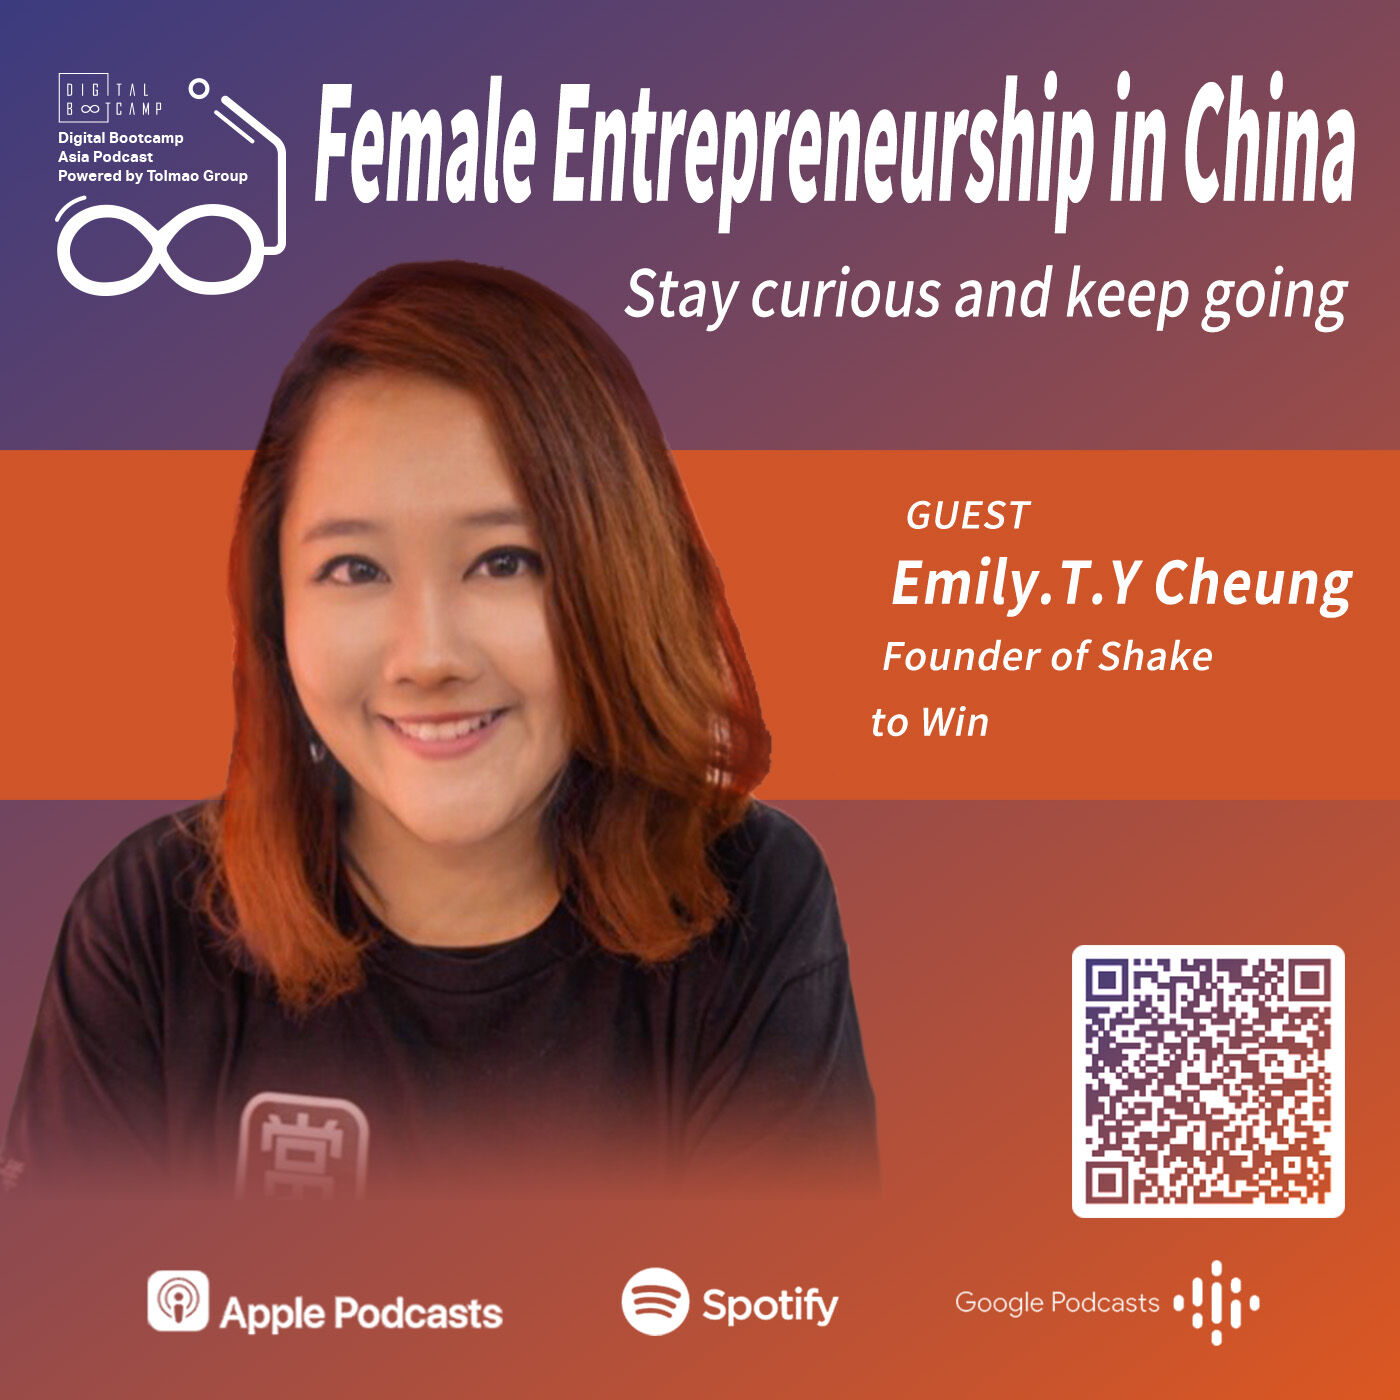 Female Entrepreneurship in China with Emily.T.Y Cheung, Founder of Shake to Win